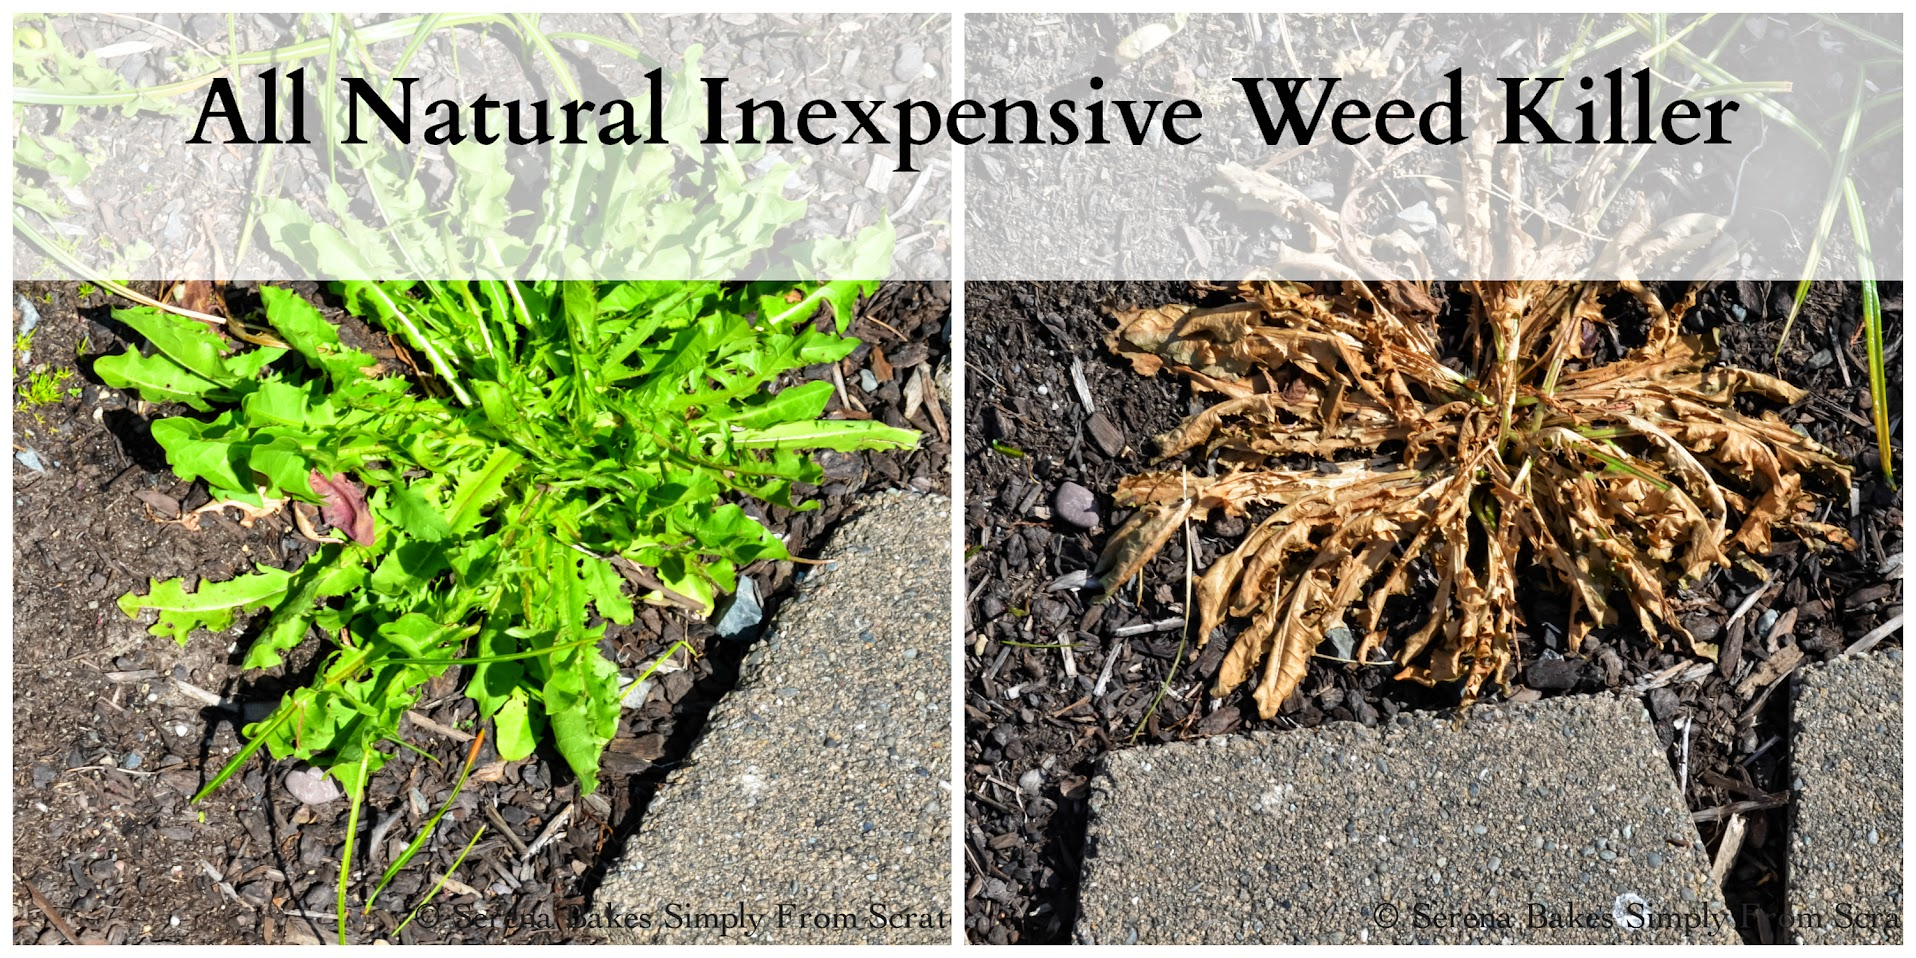 All Natural Inexpensive Weed Killer